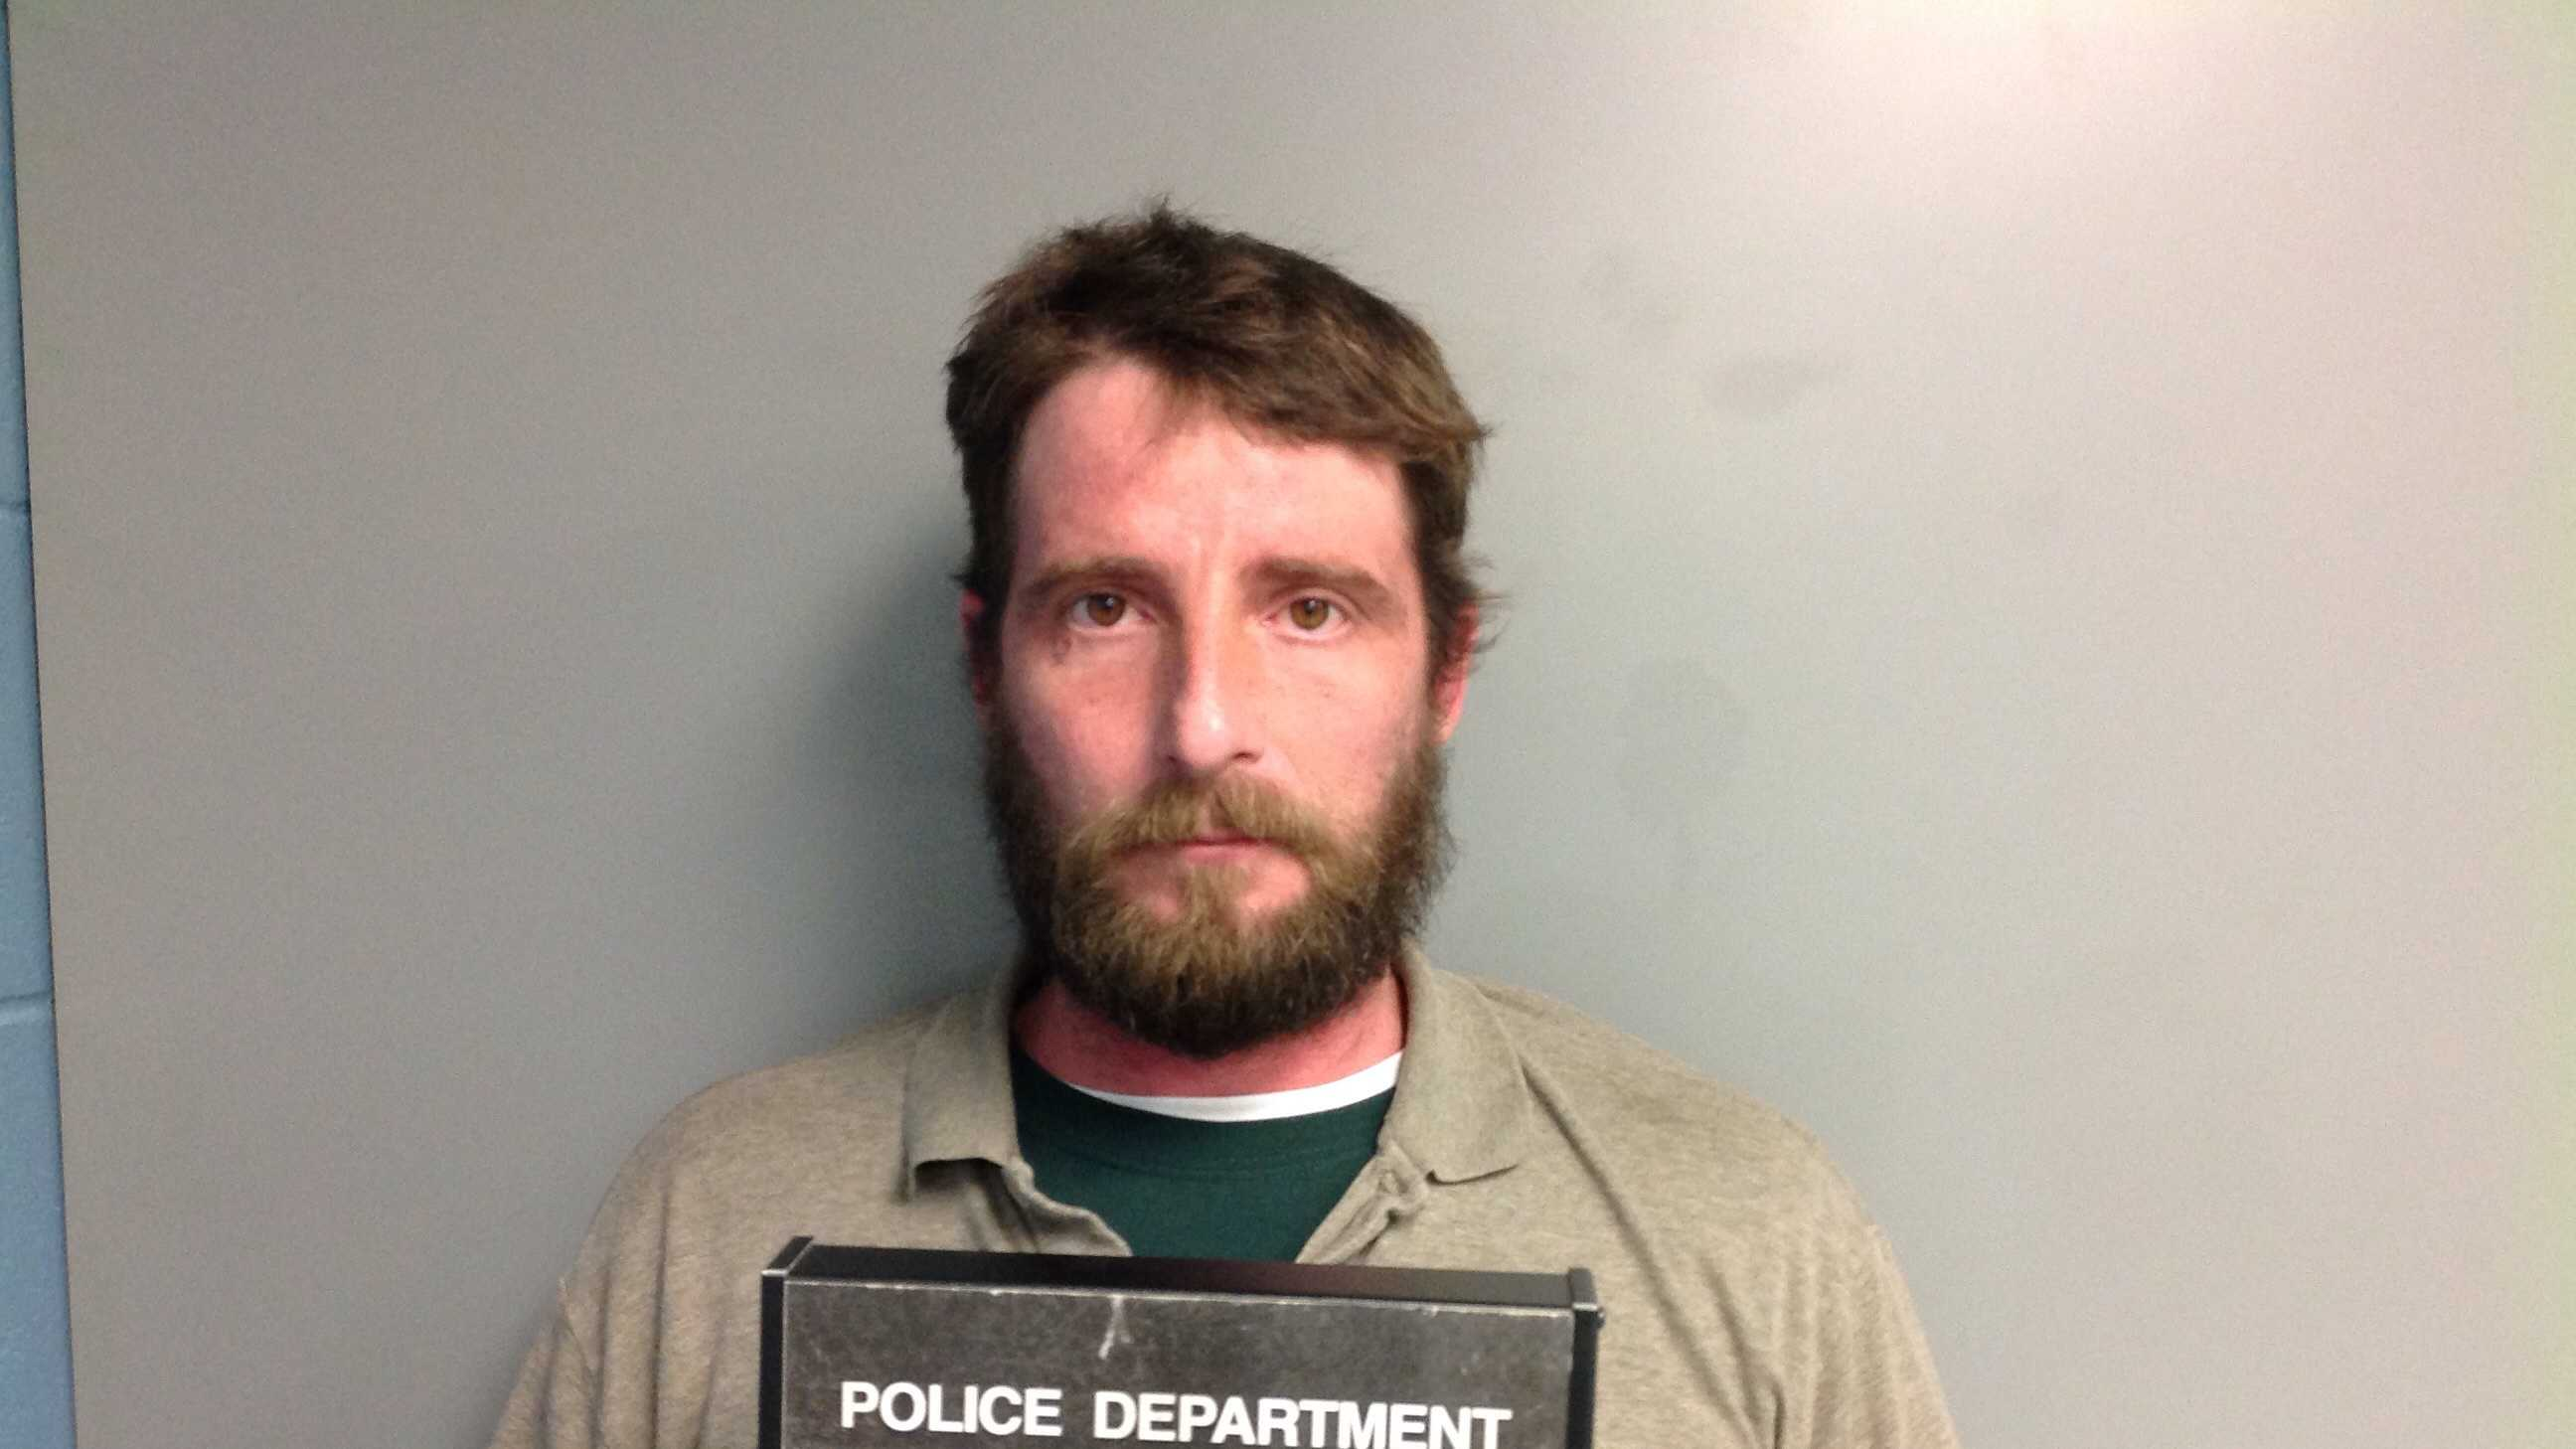 Michael Maheu of Ripton is accused of robbing 30 prescription pain pills from a Rite Aid pharmacy on Sunday, Dec. 28th, 2014